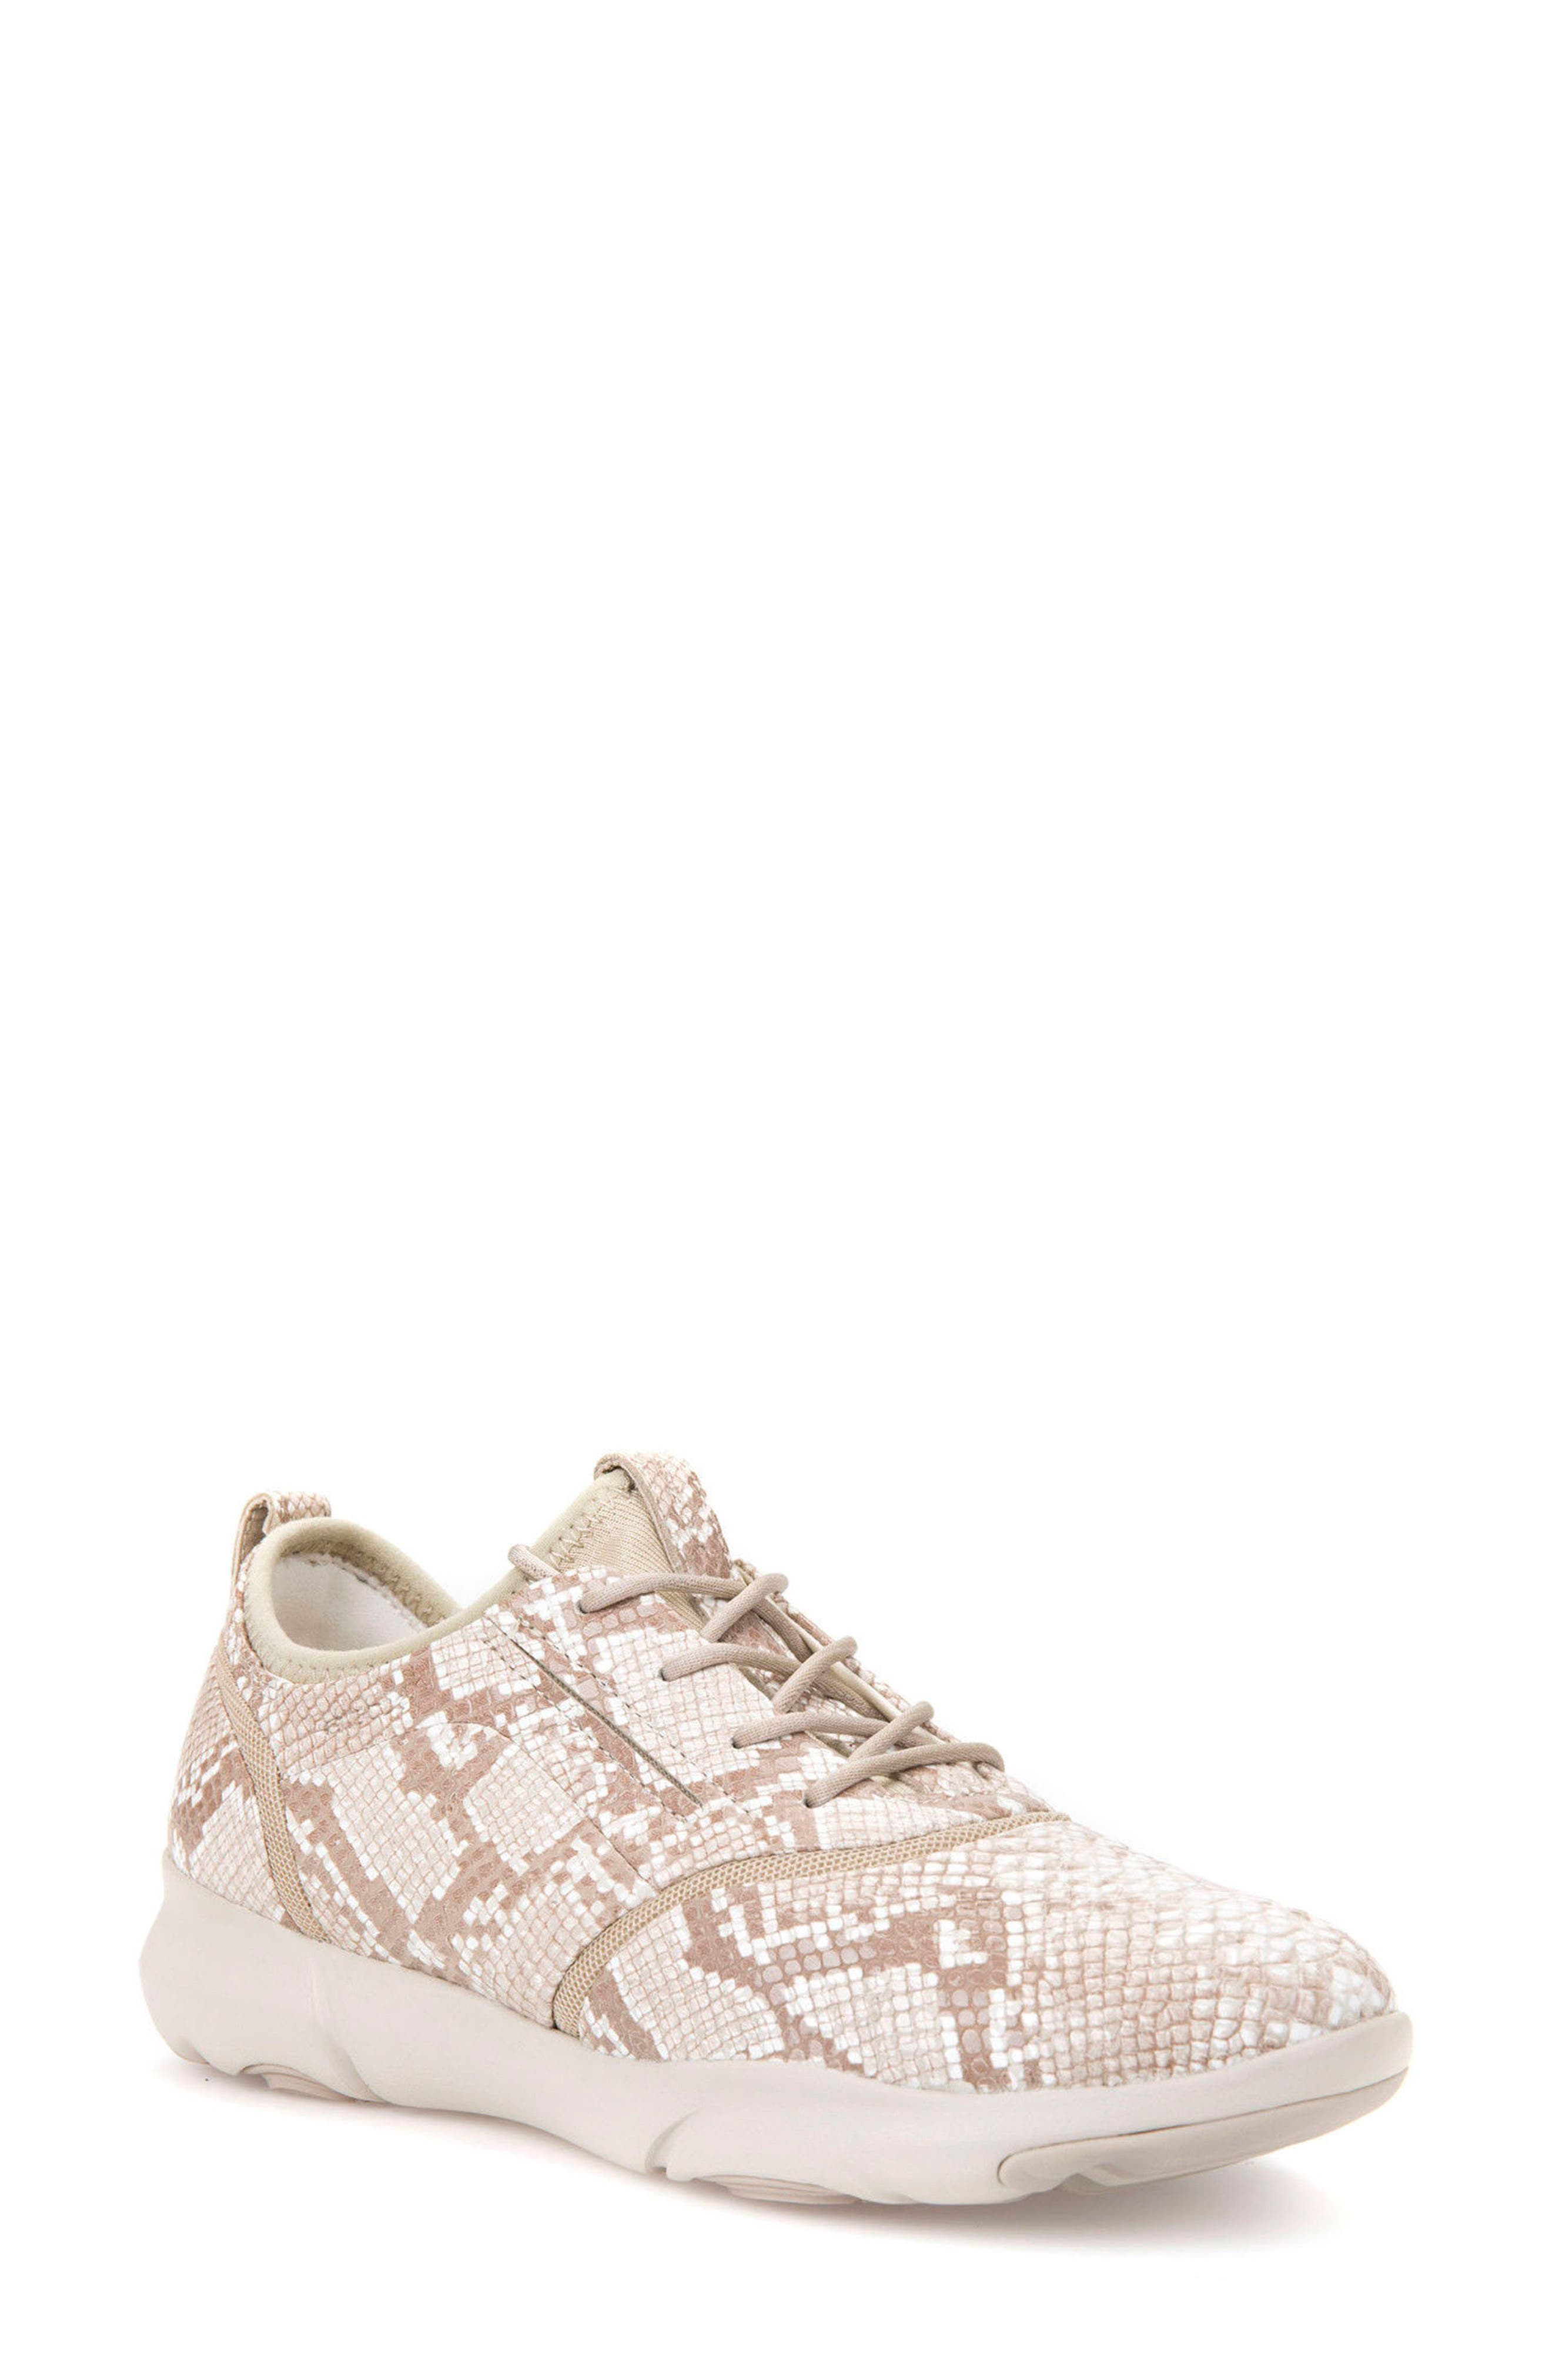 Nebula S 1 Python Embossed Sneaker,                         Main,                         color, Beige Leather